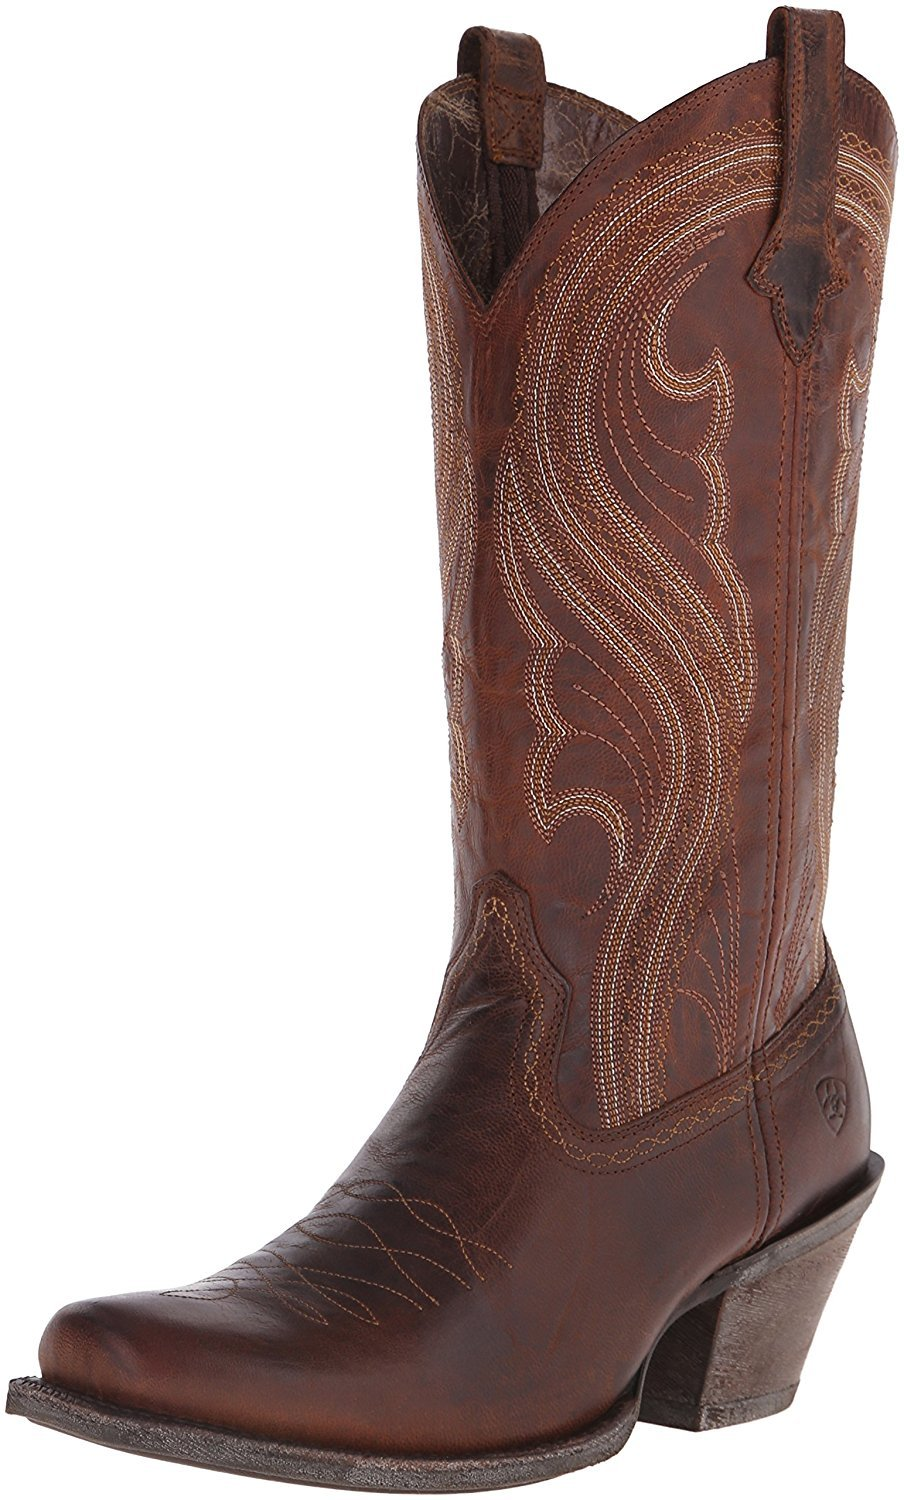 "Ariat 10016357 Lively 12"" Pull On Cowboy Boot by Ariat Women's"